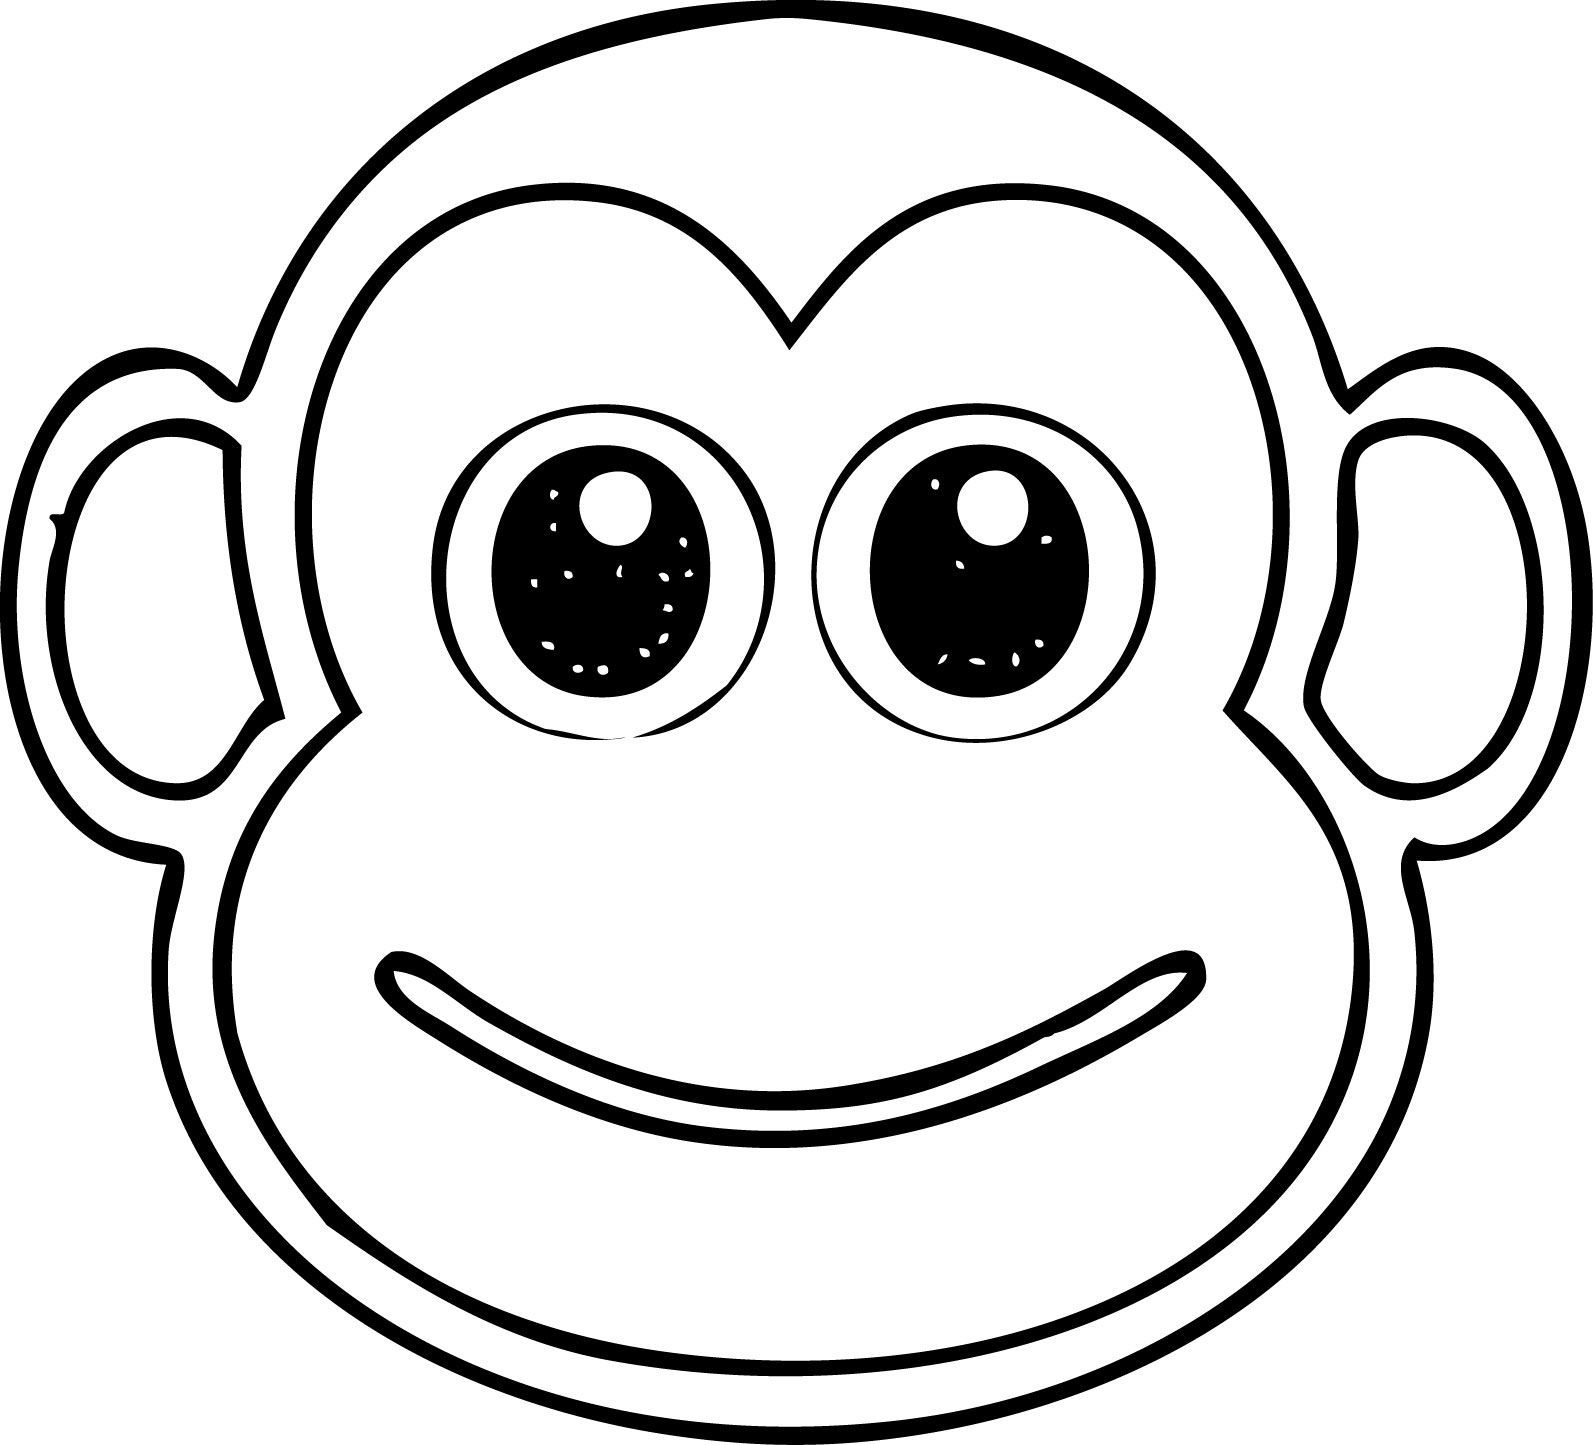 Cool Monkey Head Coloring Page Cartoon Monkey Face Illustration